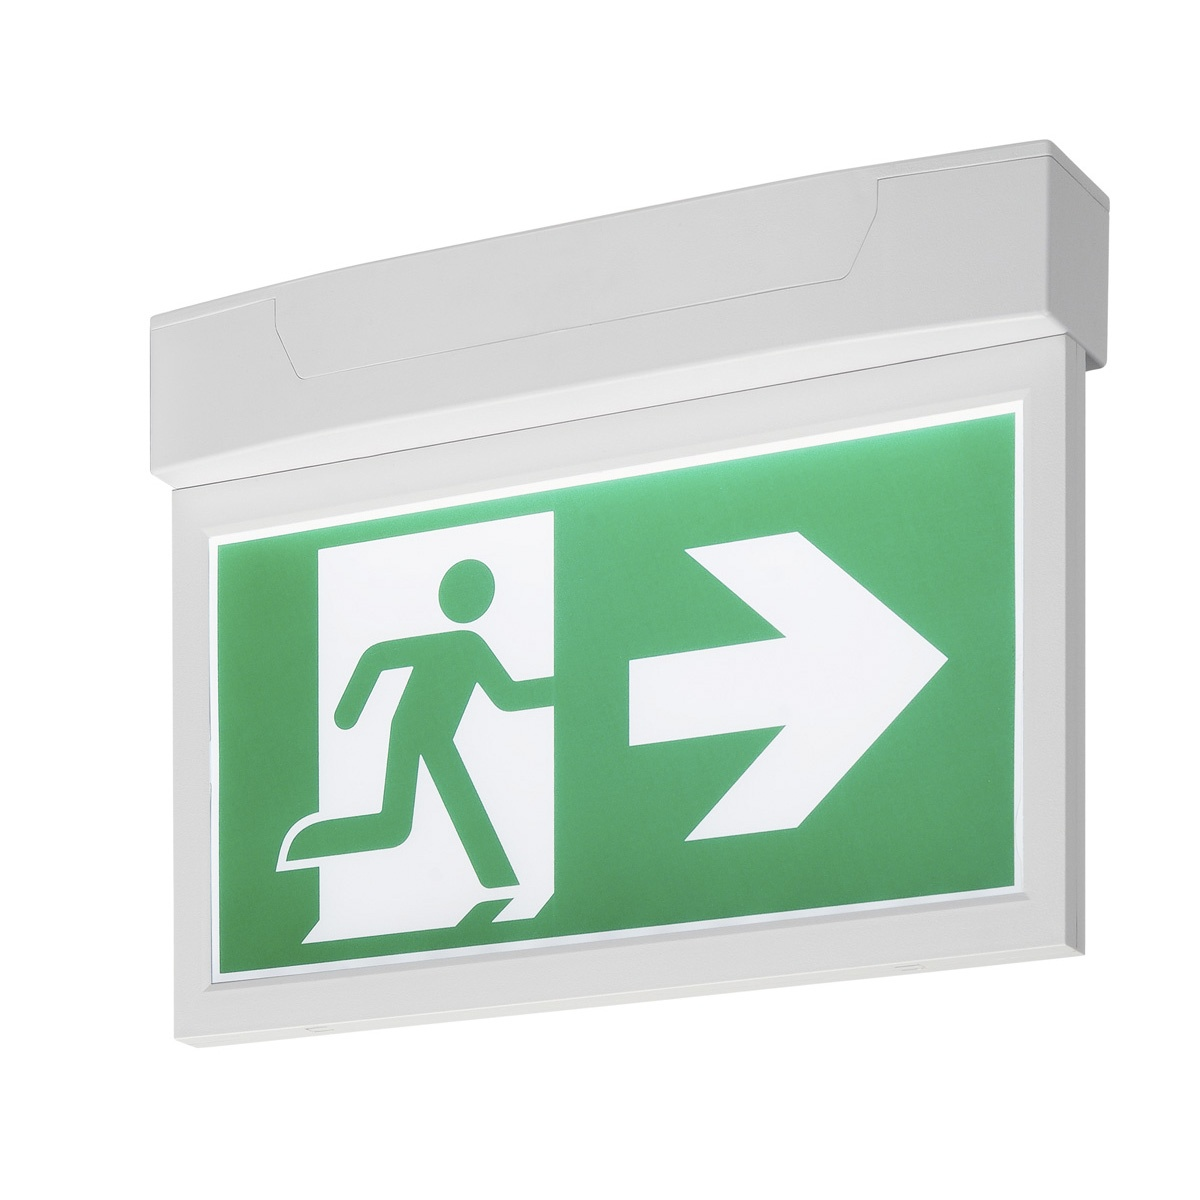 SLV | P-LIGHT 33 Noodverlichting exit sign groot